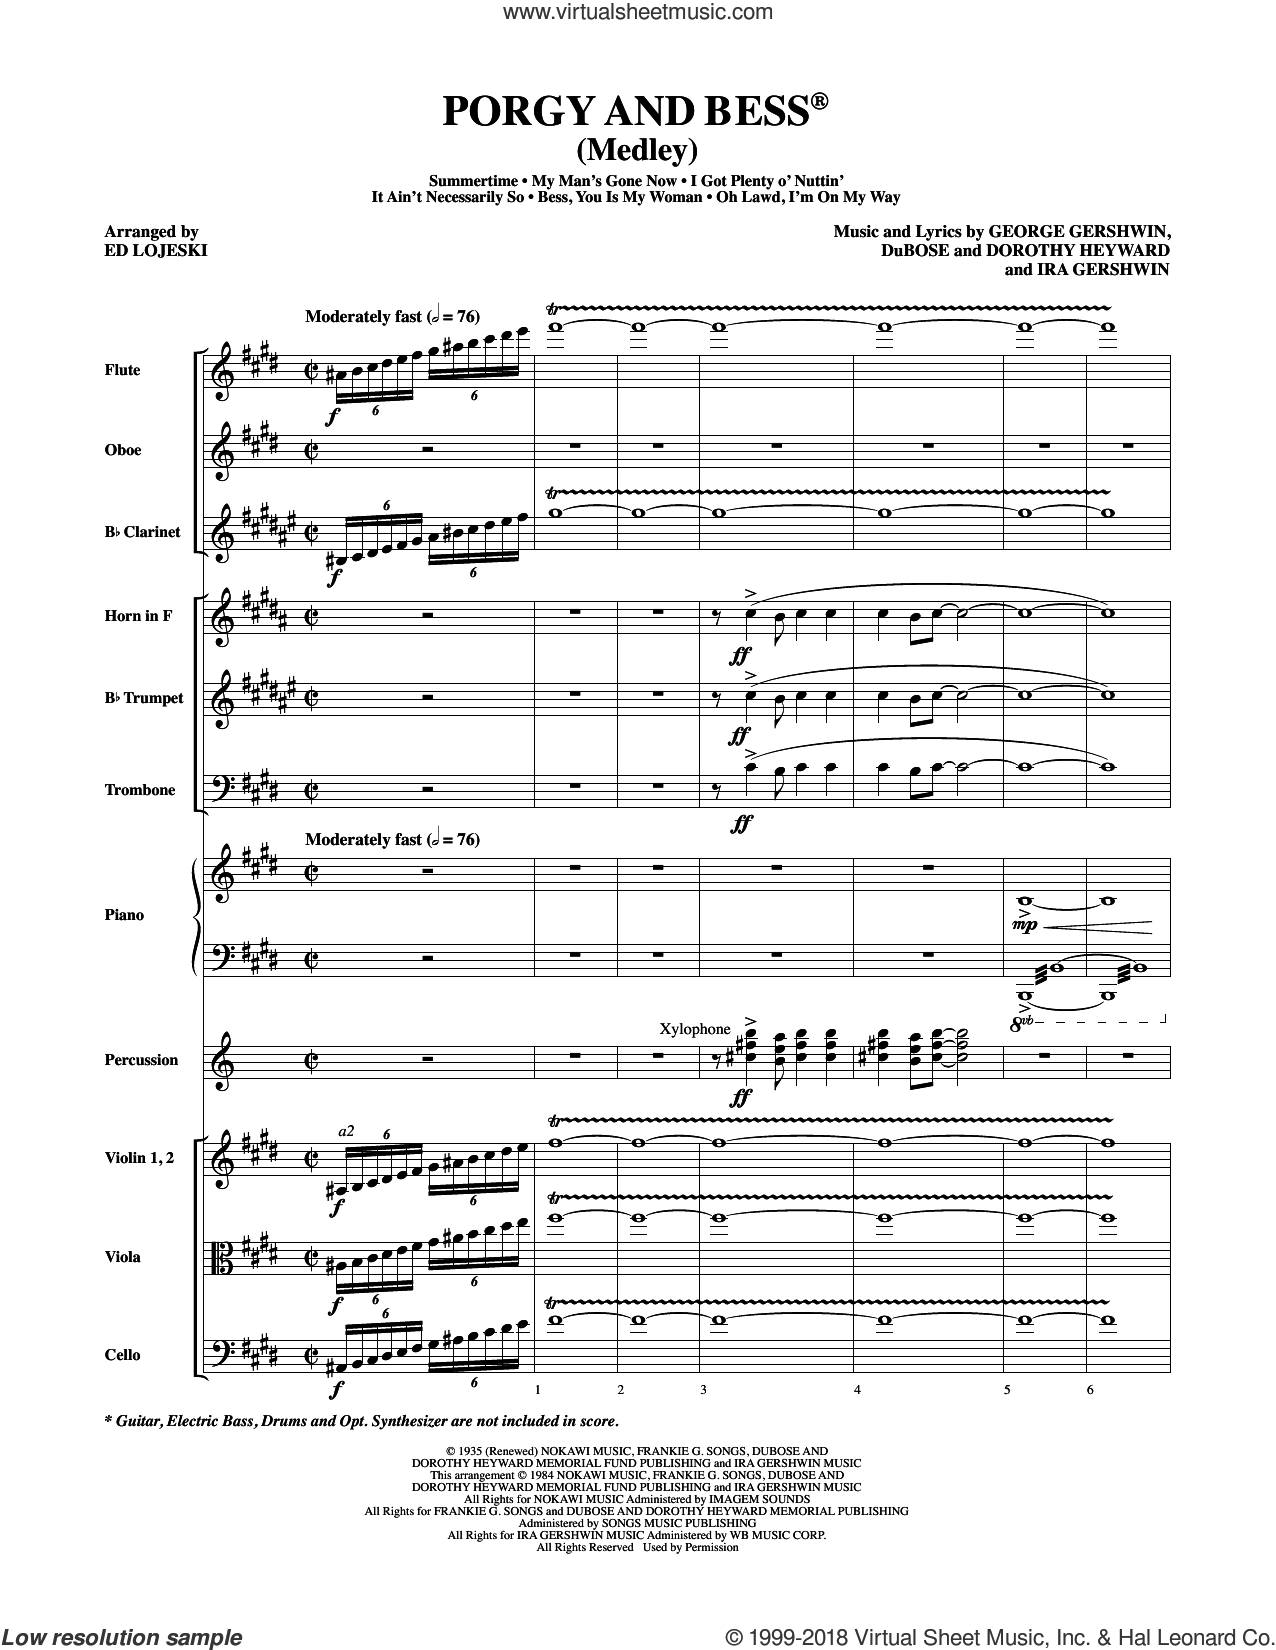 Porgy and Bess (Medley) sheet music for orchestra/band (full score) by George Gershwin, Ed Lojeski, Dorothy Heyward, DuBose Heyward and Ira Gershwin, intermediate orchestra/band (full score). Score Image Preview.